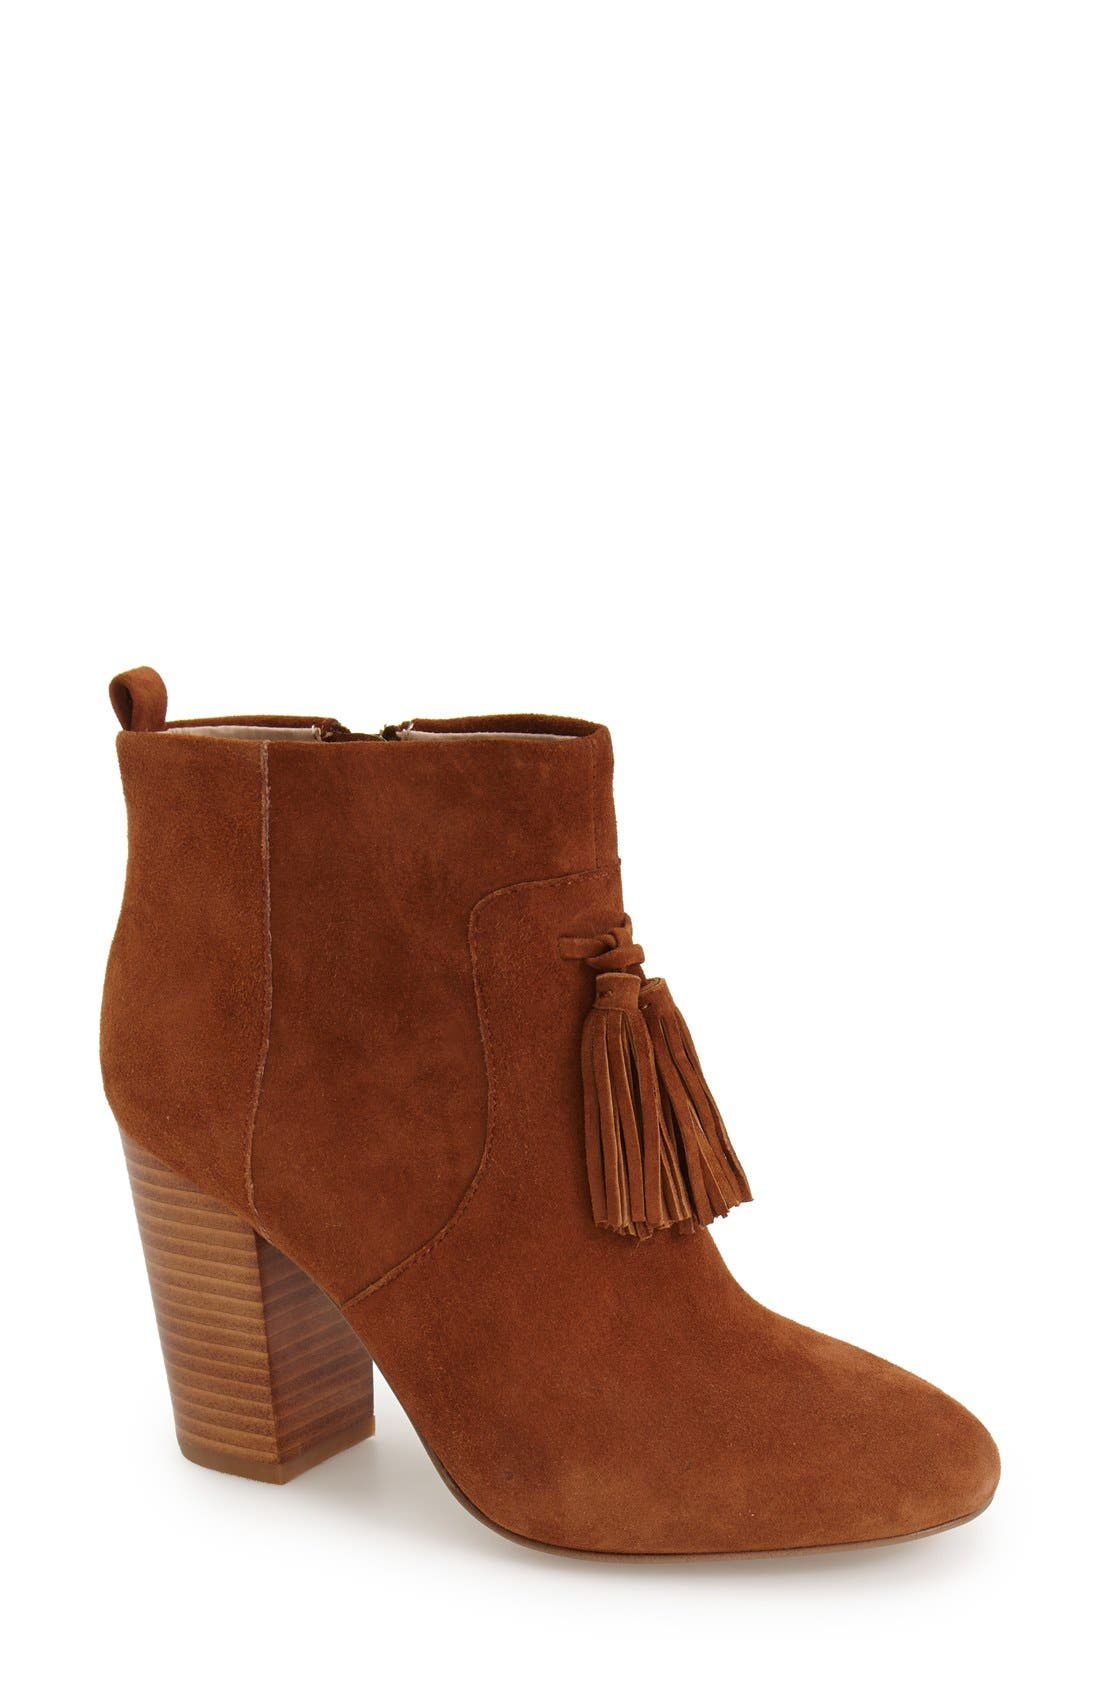 Alternate Image 1 Selected - French Connection 'Linds' Tassel Ankle Bootie (Women)